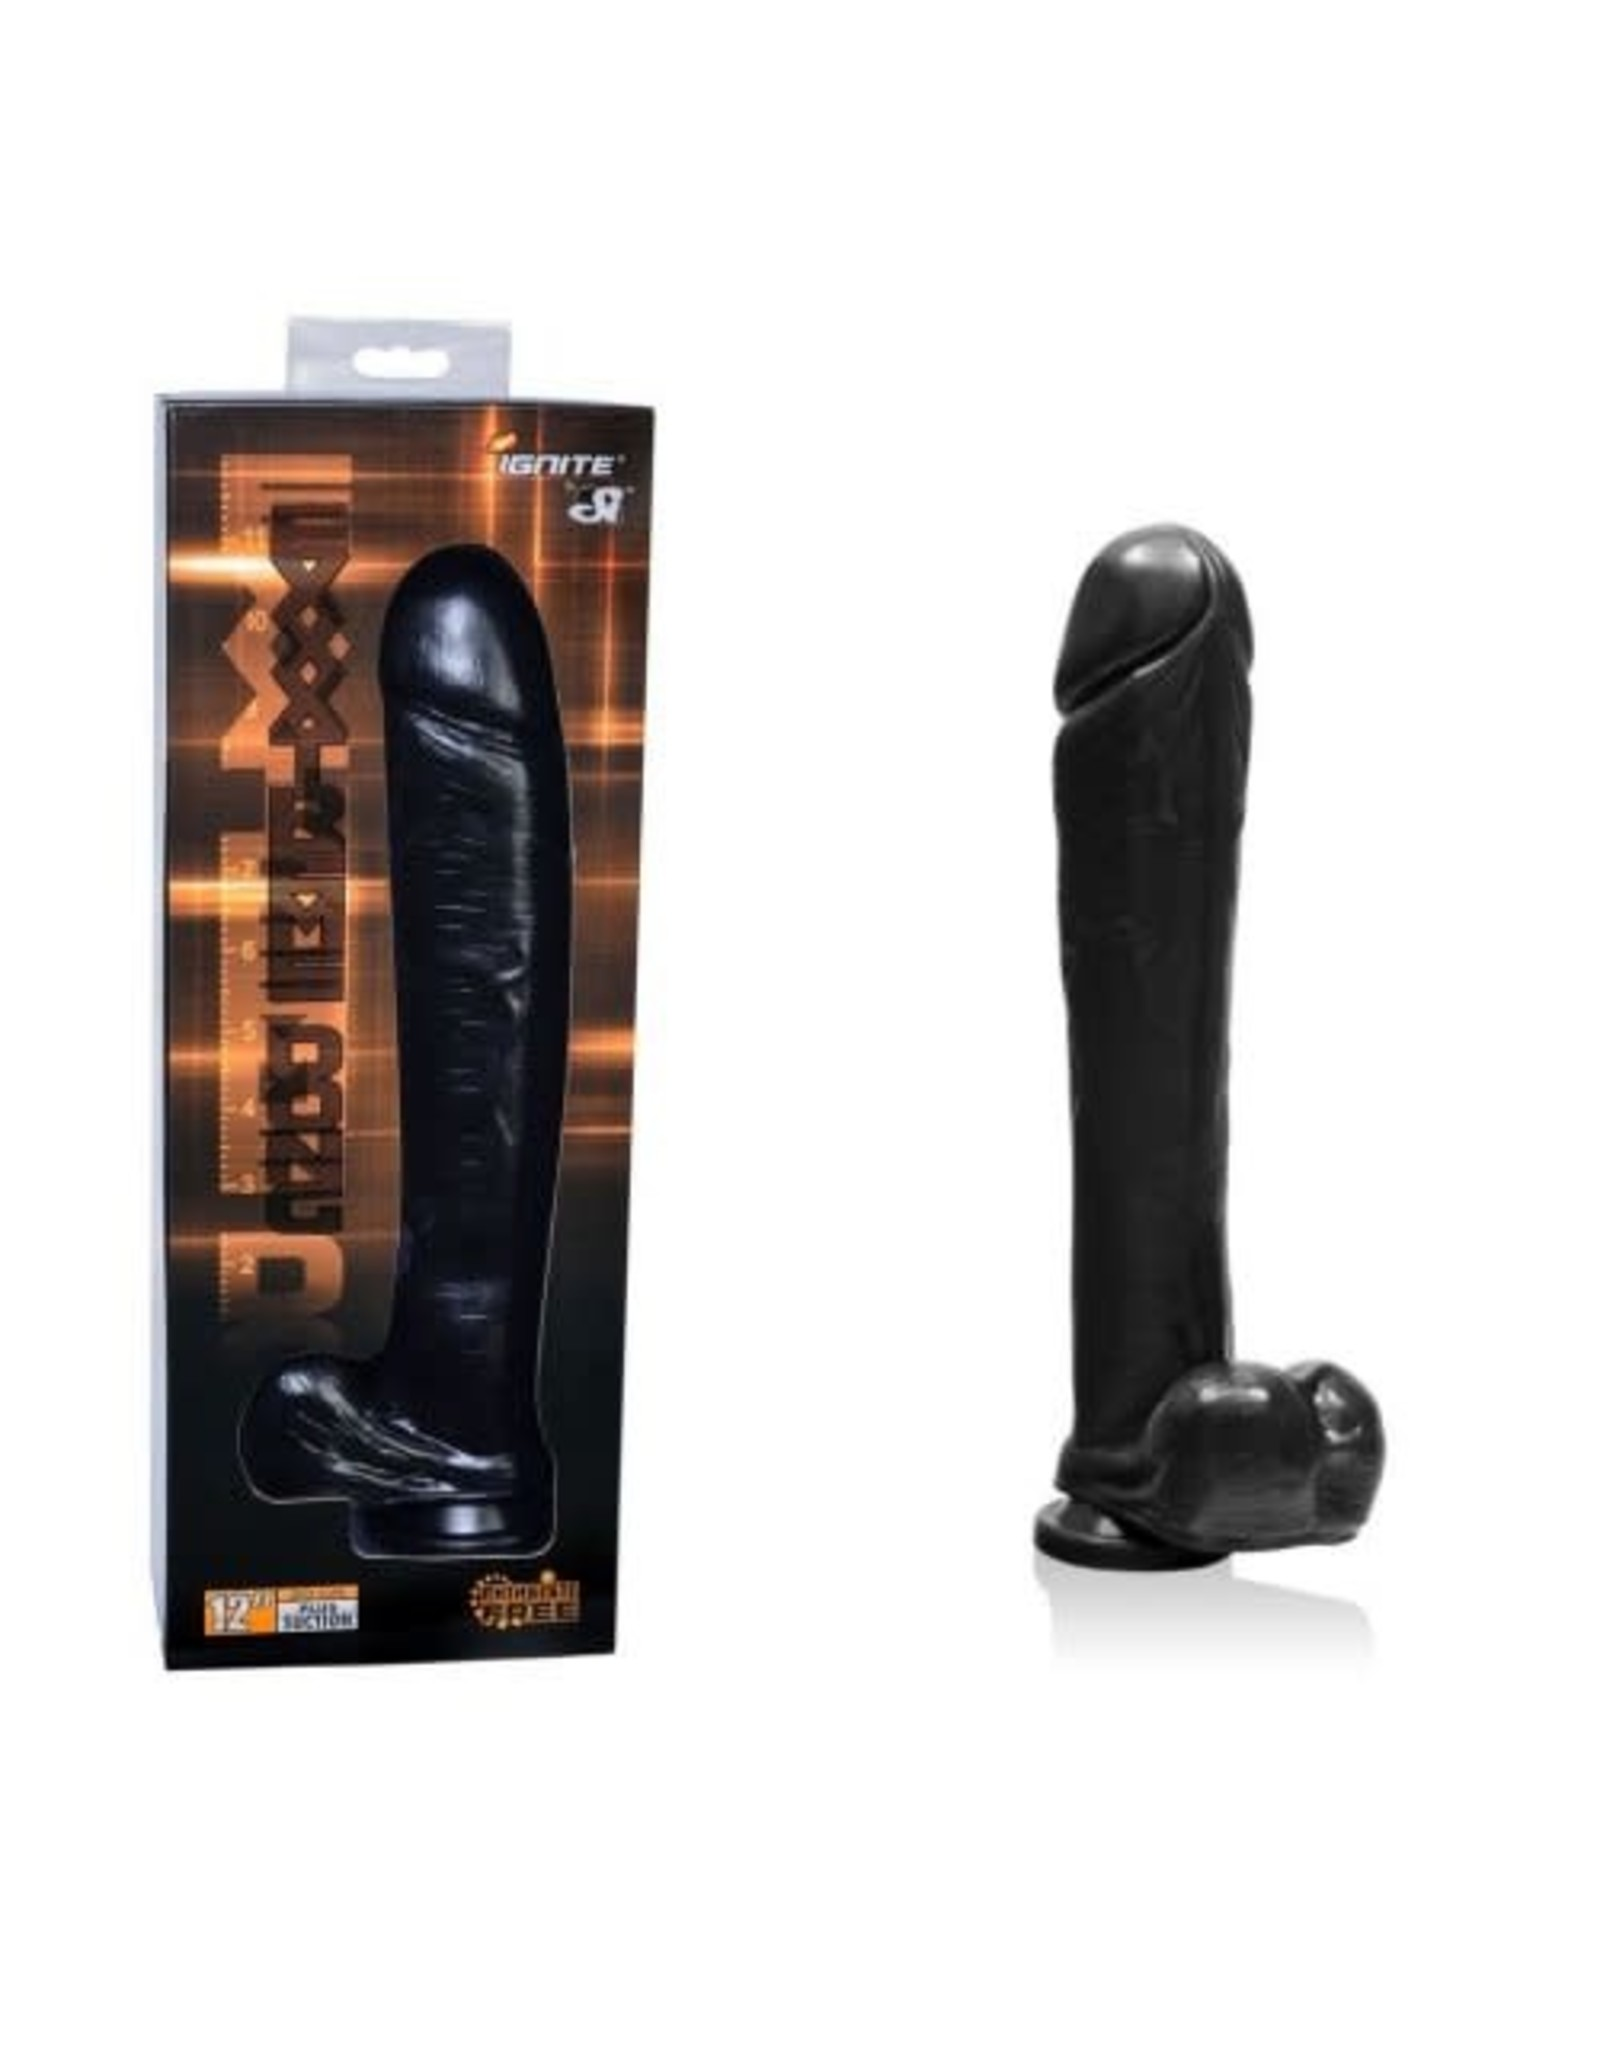 Ignite Ignite 12in Exxtreme Dong with Suction Cup Black